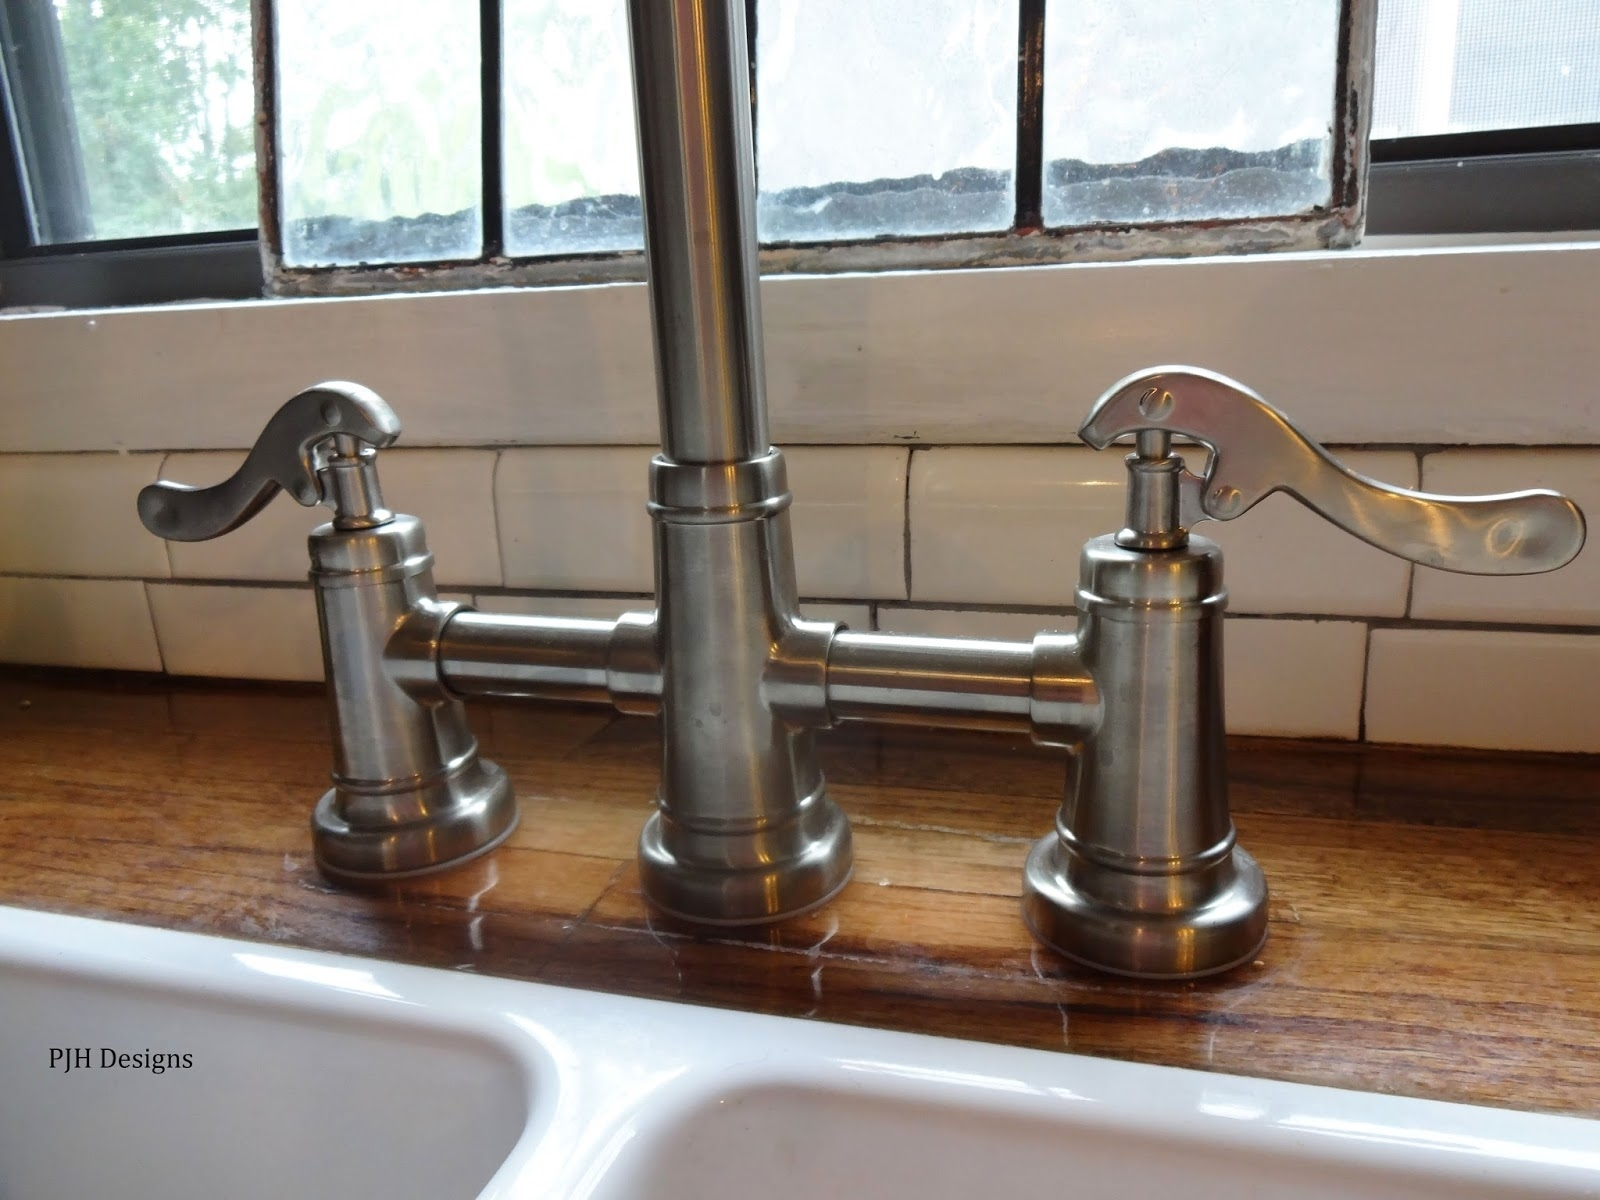 Ideas, old style kitchen faucets old style kitchen faucets kitchen vintage style kitchen faucets for satisfying vintage 1600 x 1200  .